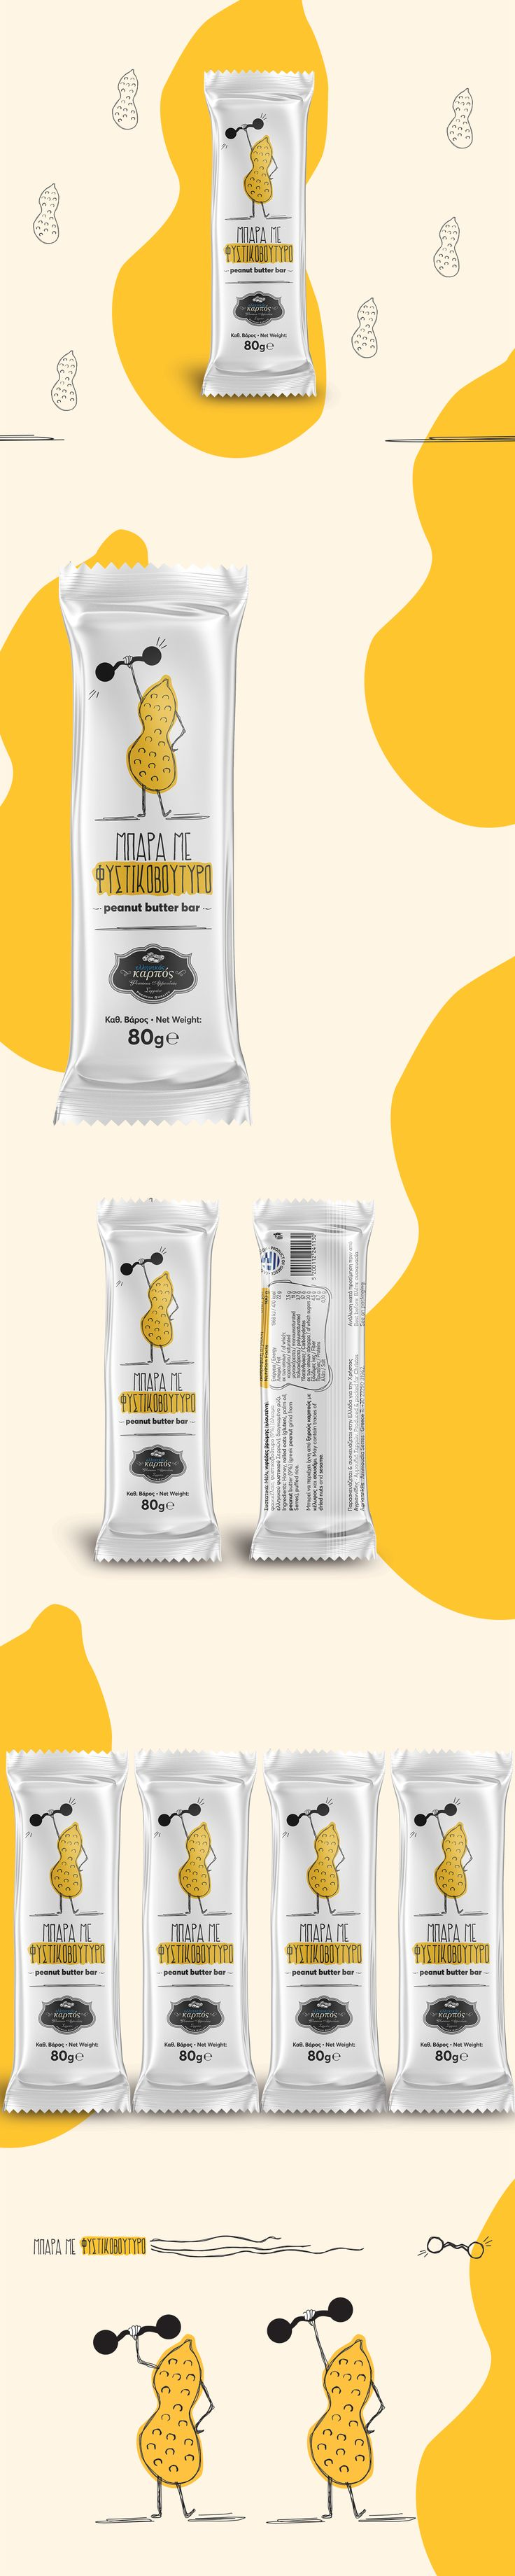 Packaging design of peanut butter bar for the company Greek Nut. Design was based on the product itself and its characteristics, creating the illustration of a peanut full of energy and strength.